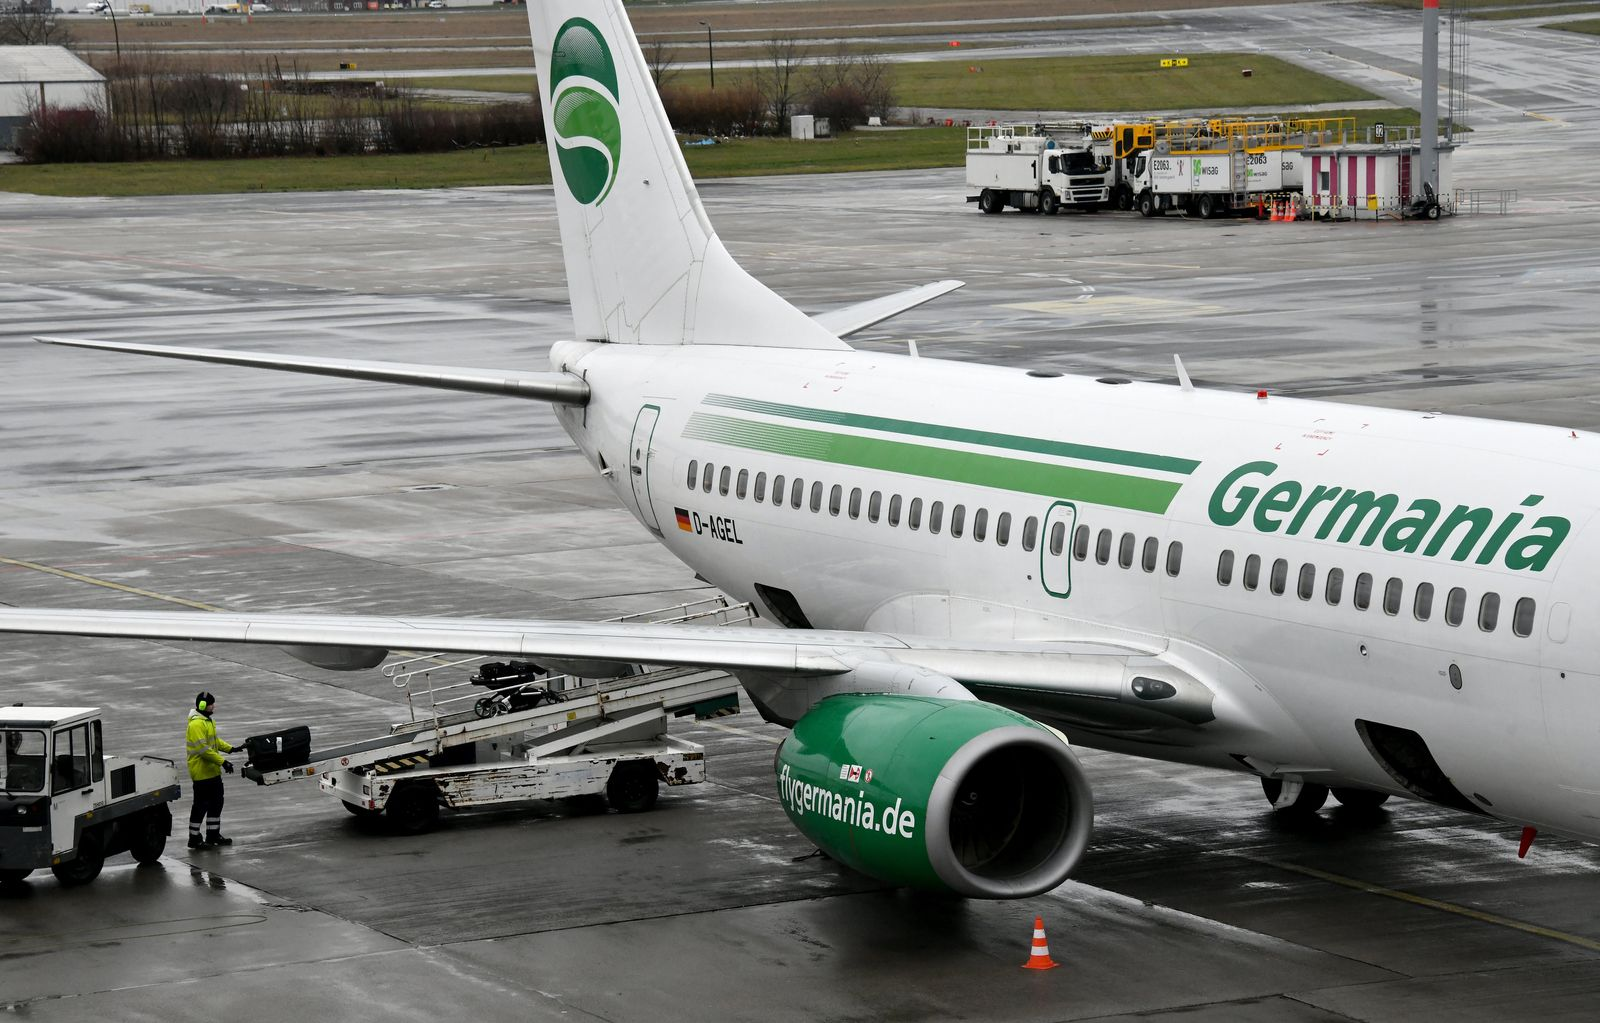 Airline Germania